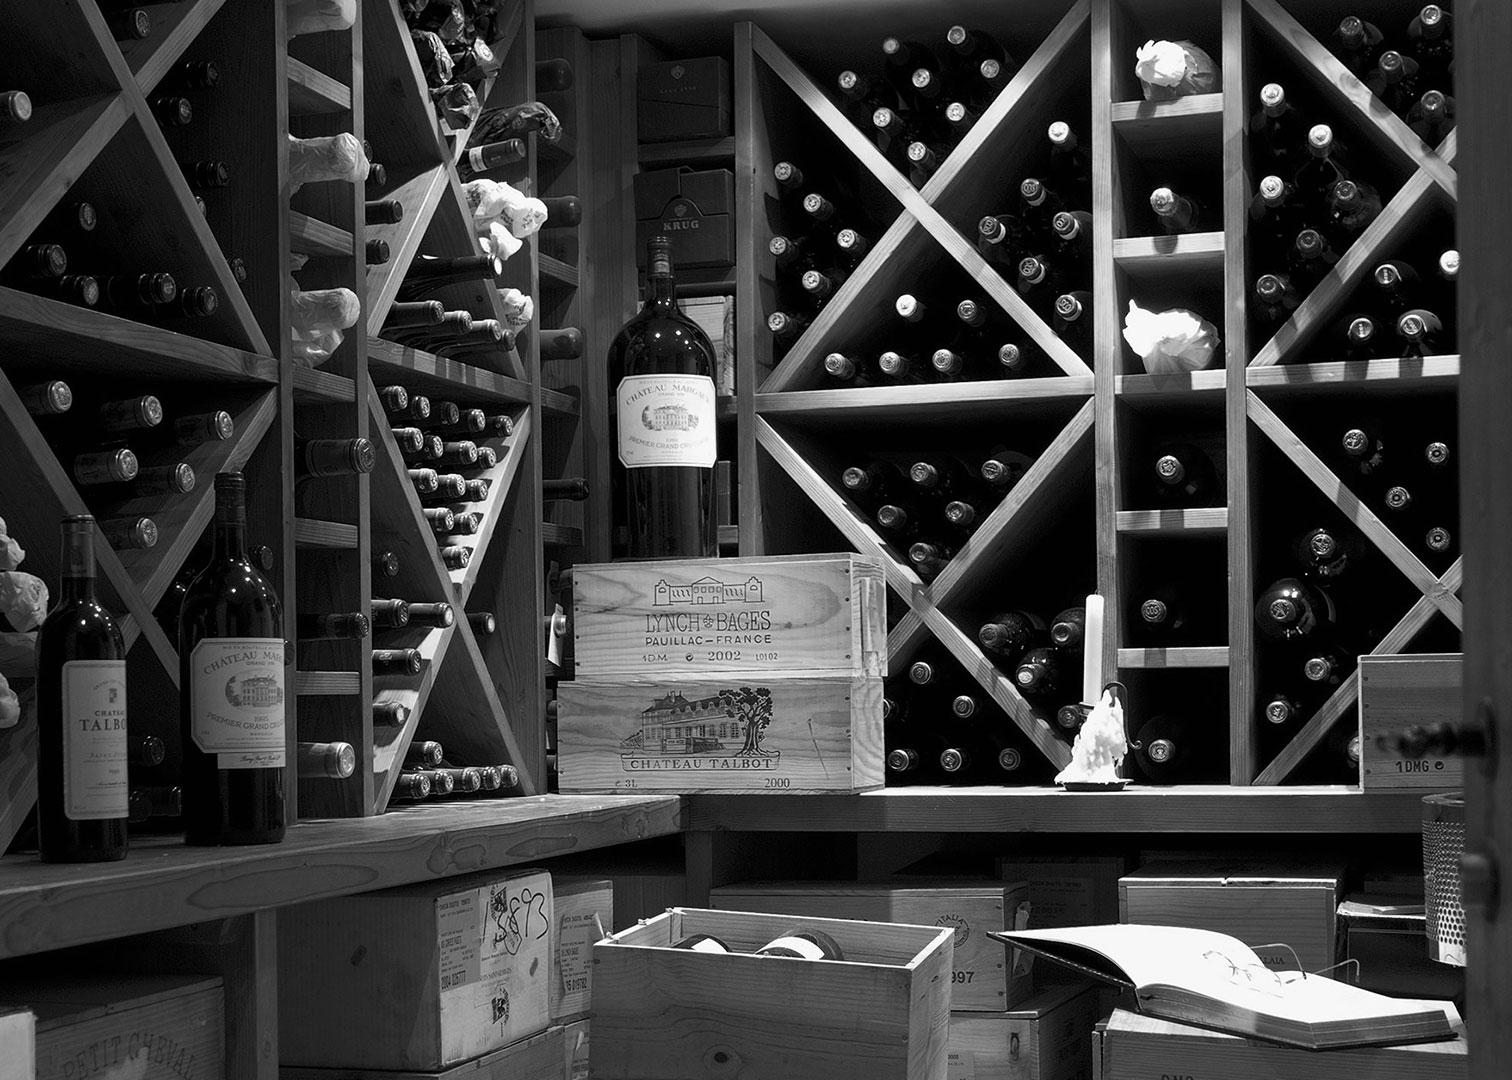 Fine wines between investment and collecting